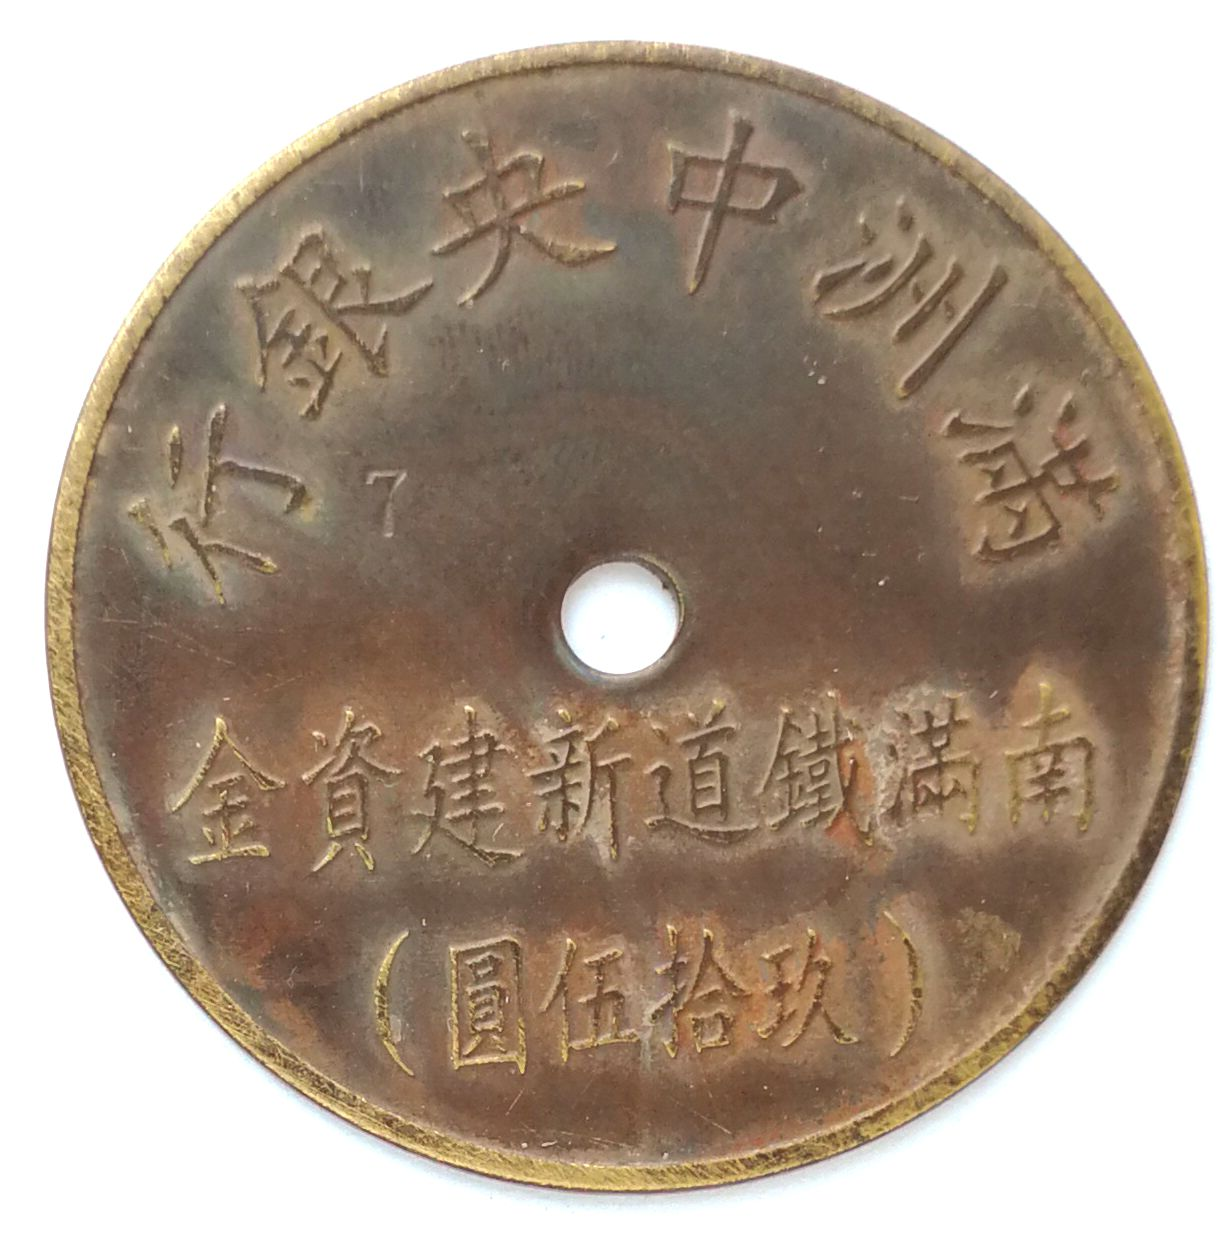 BT570, South Manchukuo Railway Construction Fund, 95 Yen Token, 1944